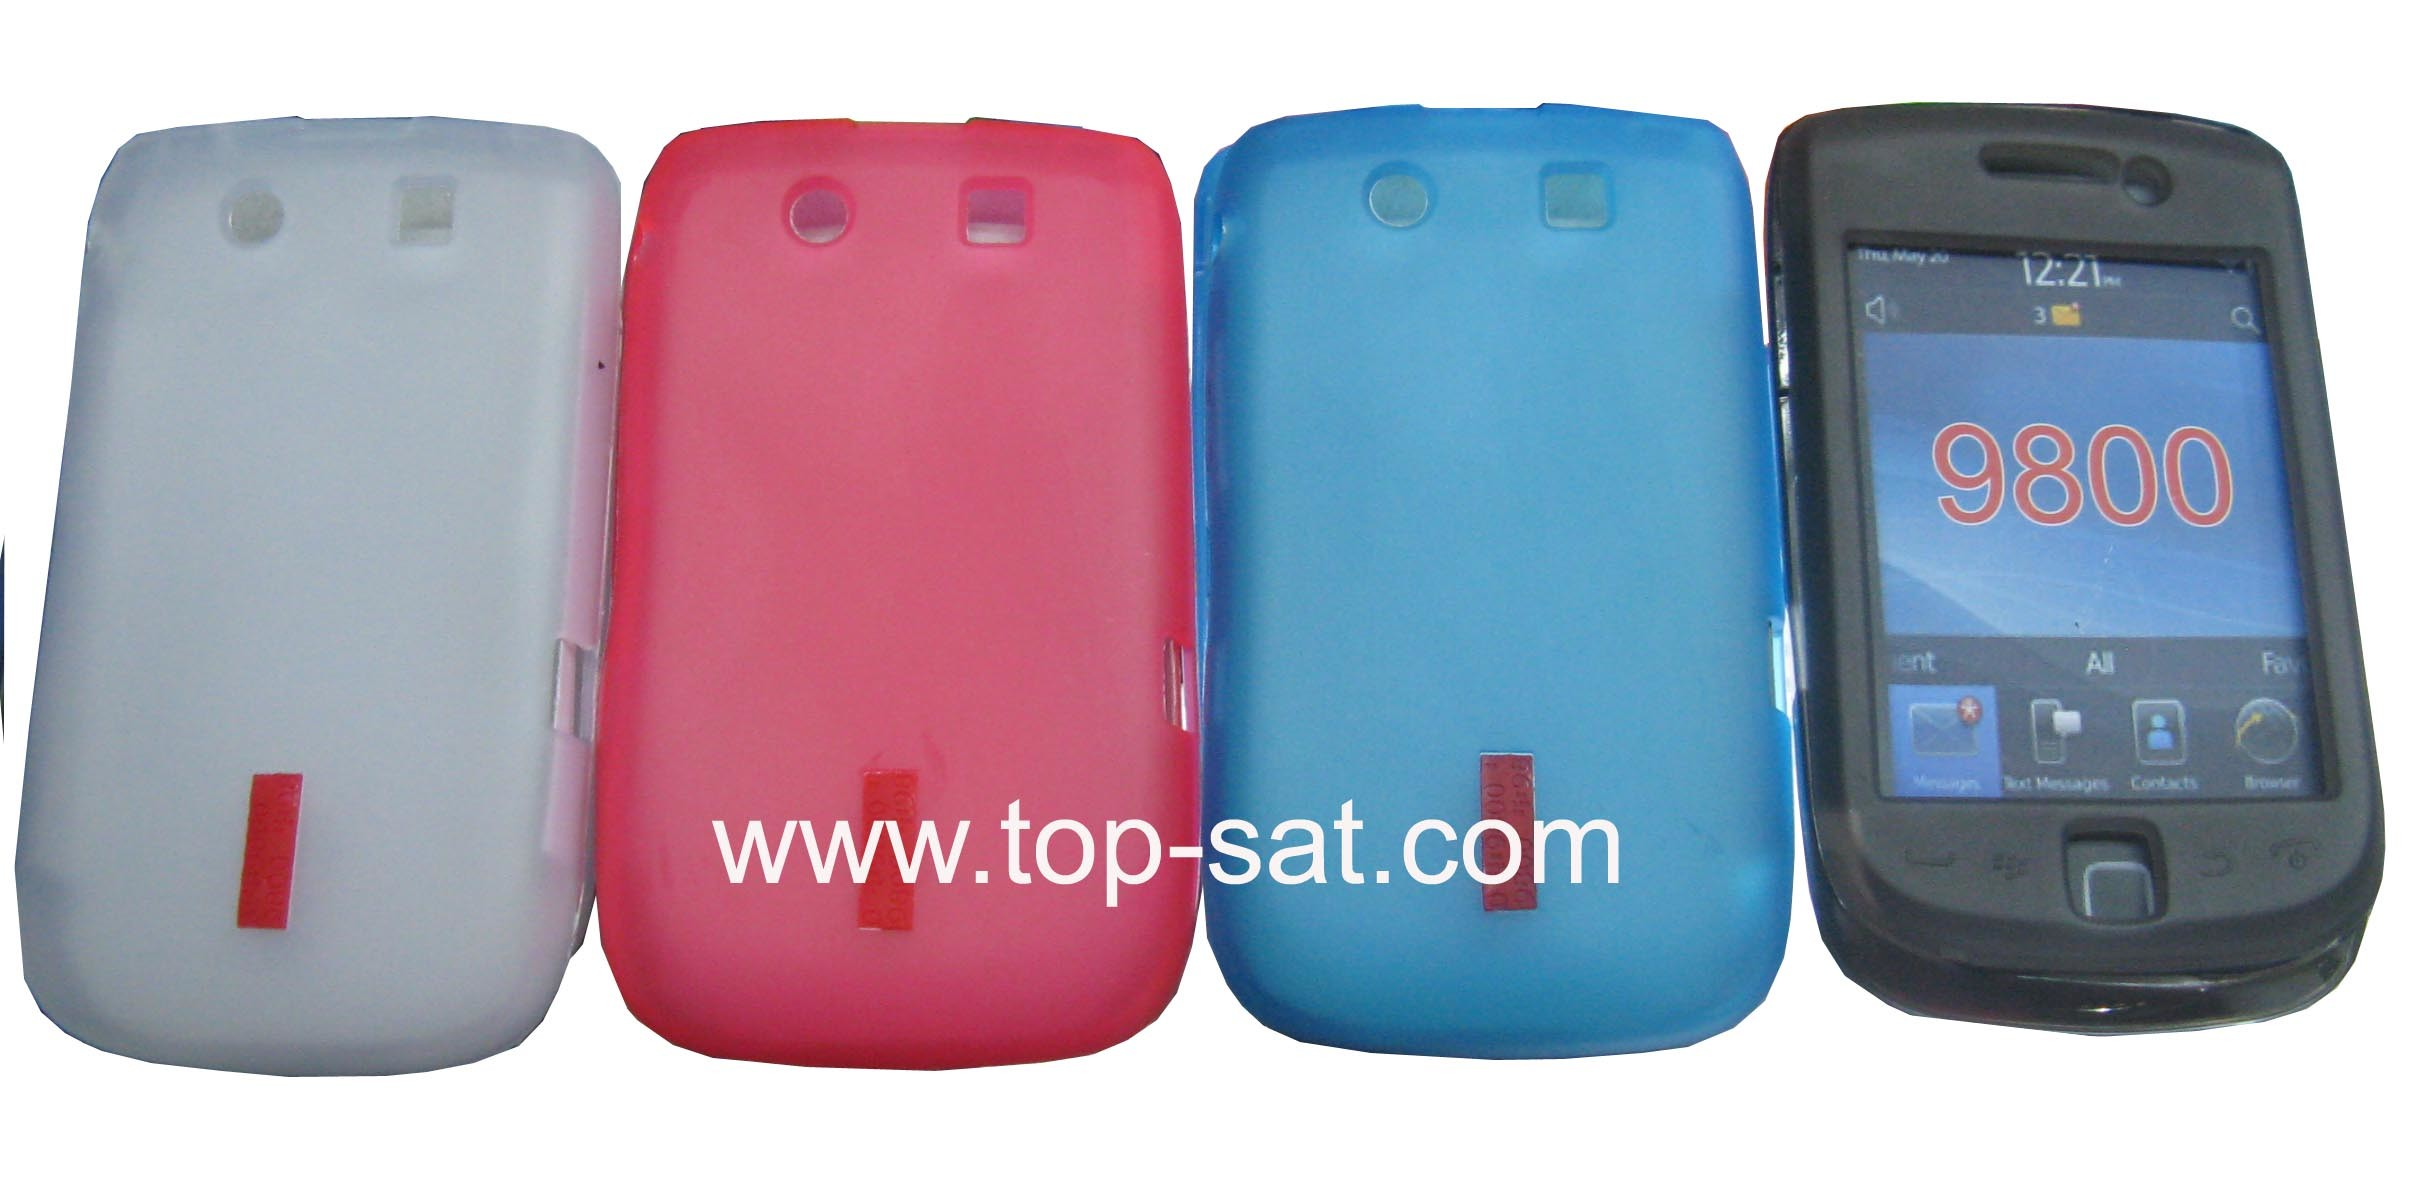 blackberry torch covers